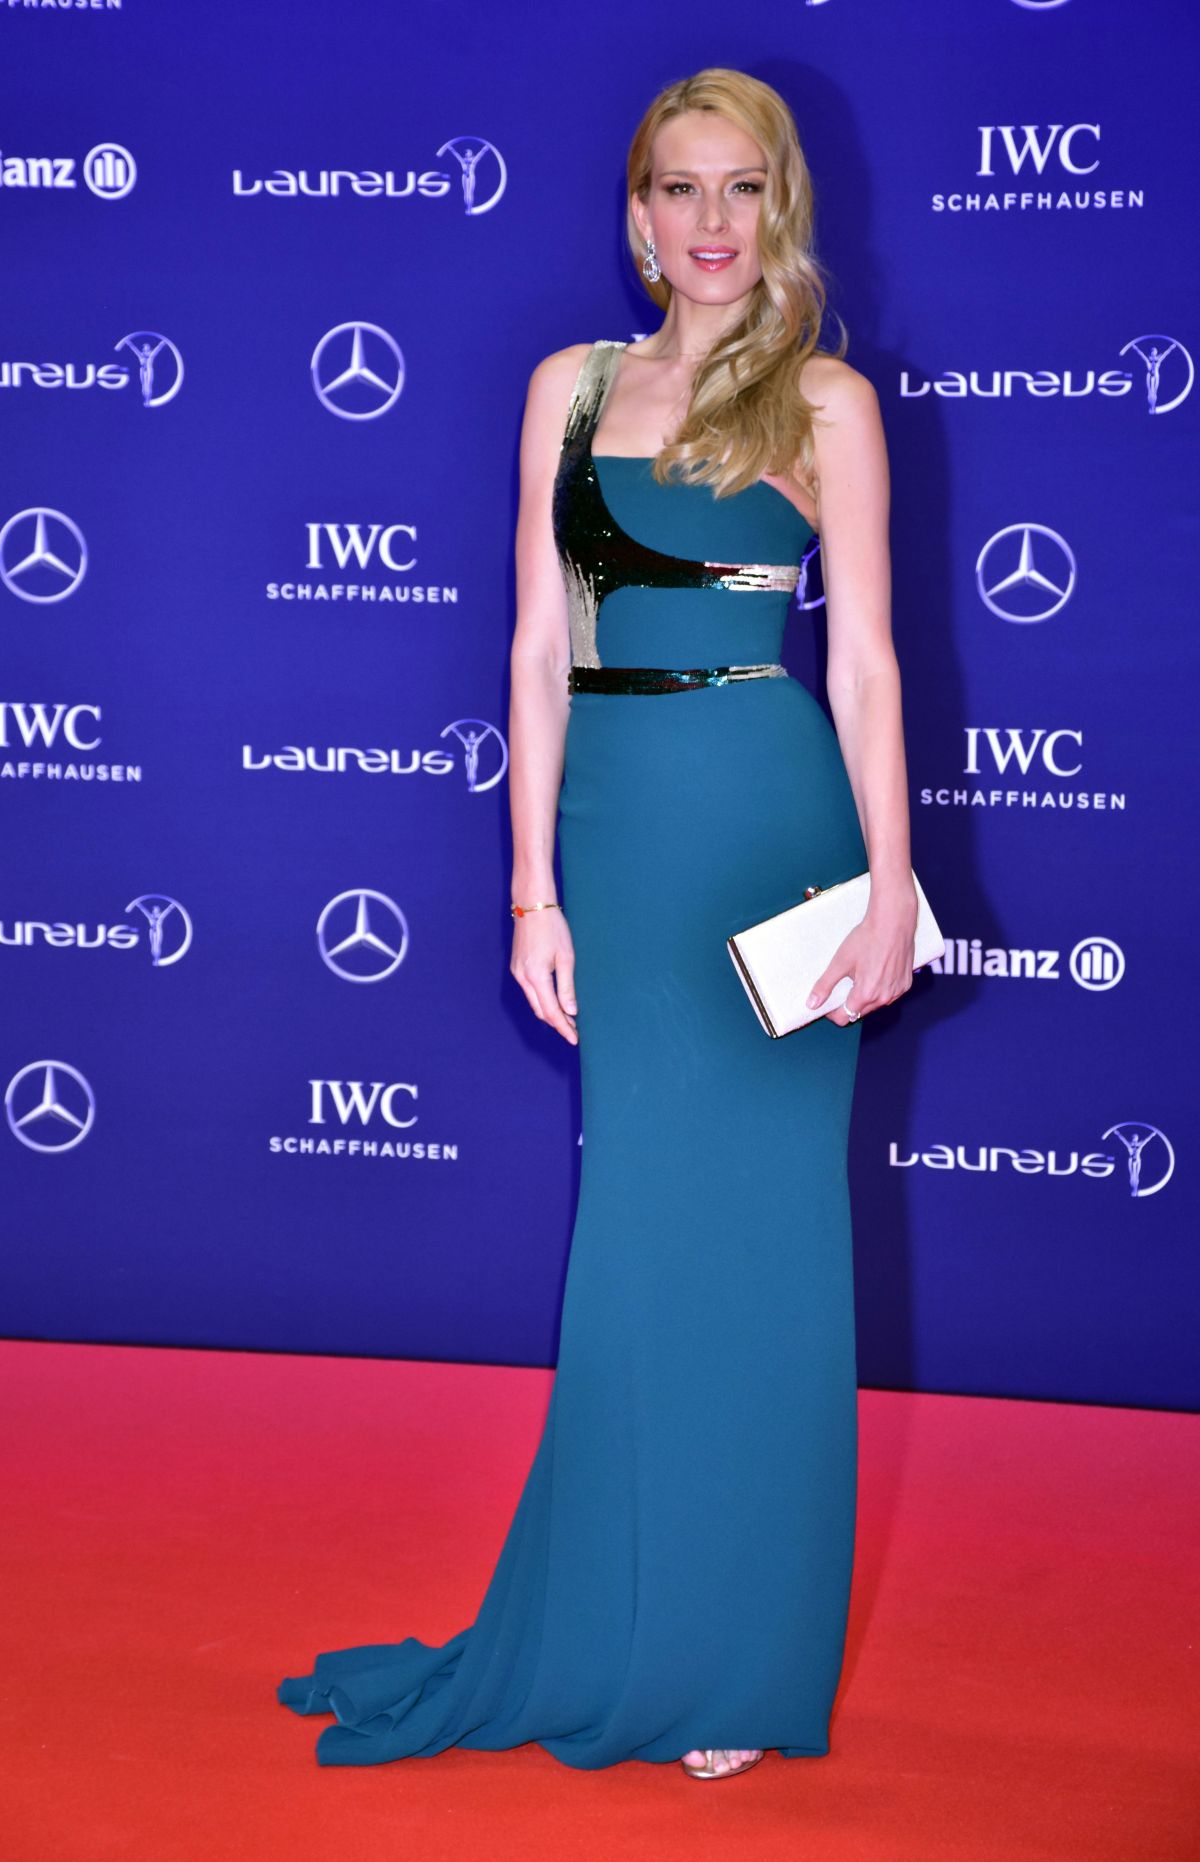 PETRA NEMCOVA at Laureus World Sports Awards in Berlin 04/18/2016